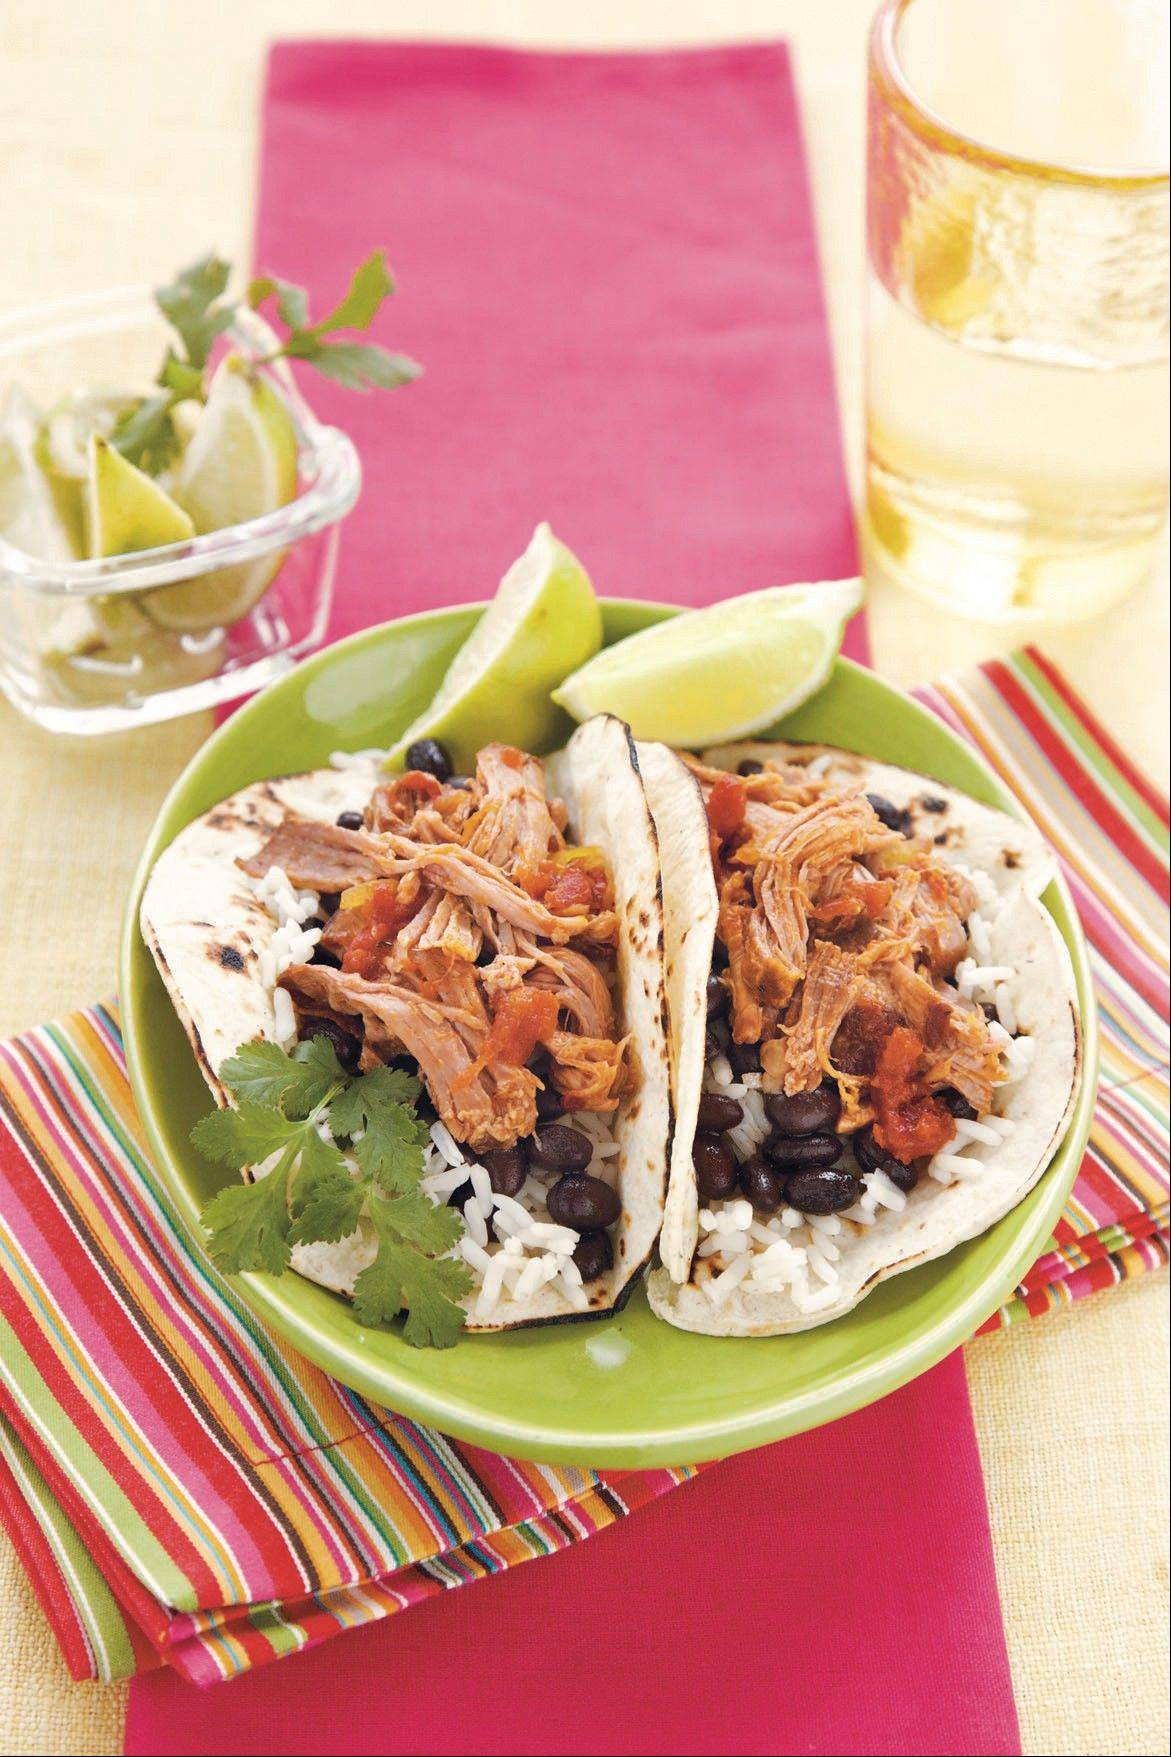 Slow-cooker dinners, like these pork tacos from �Southern Living Big Book of Slow Cooking� make for simple and hearty winter fare.